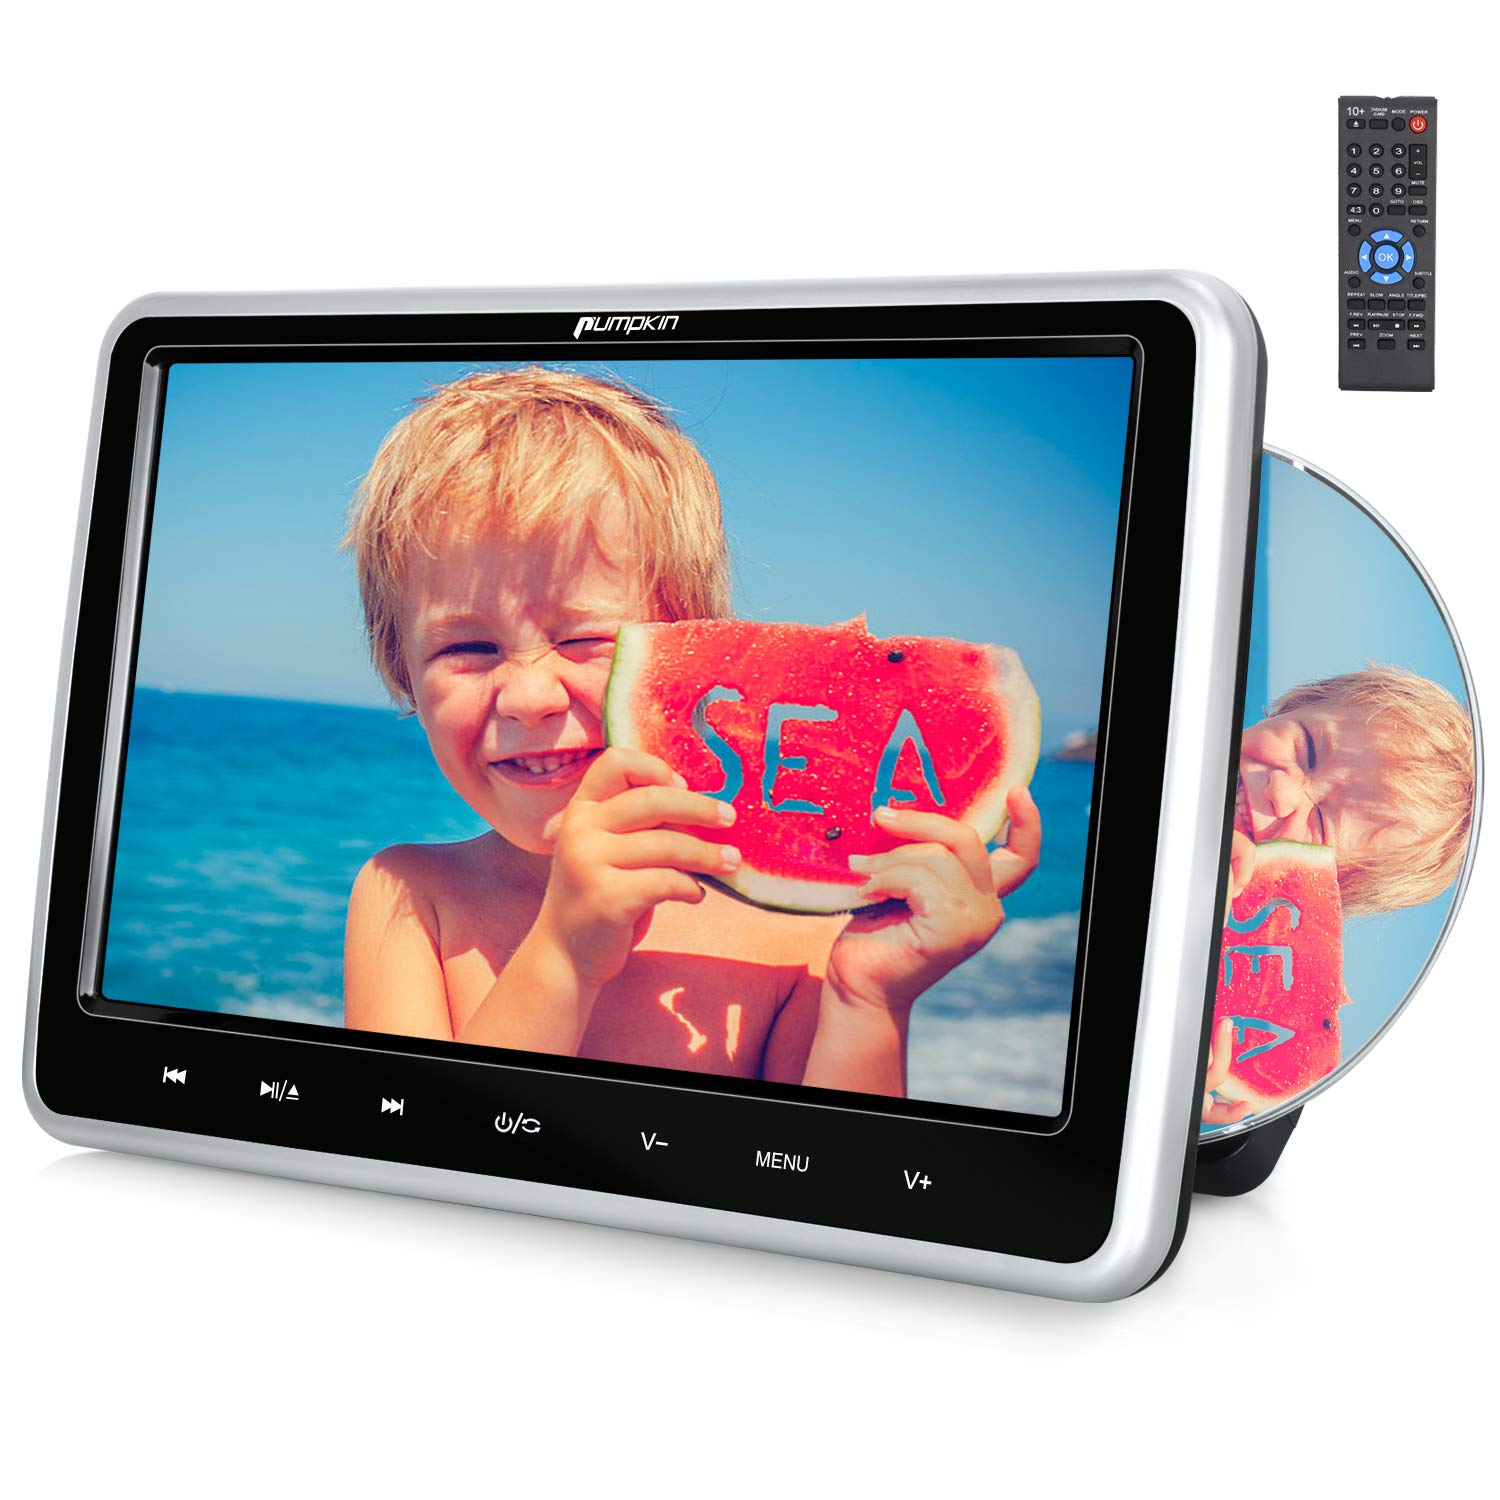 PUMPKIN 10.1 Inch Headrest Car DVD Player with Suction Drive, Support Region Free, Sync Screen, AUX, AV in Out, Last Memory, USB SD by PUMPKIN